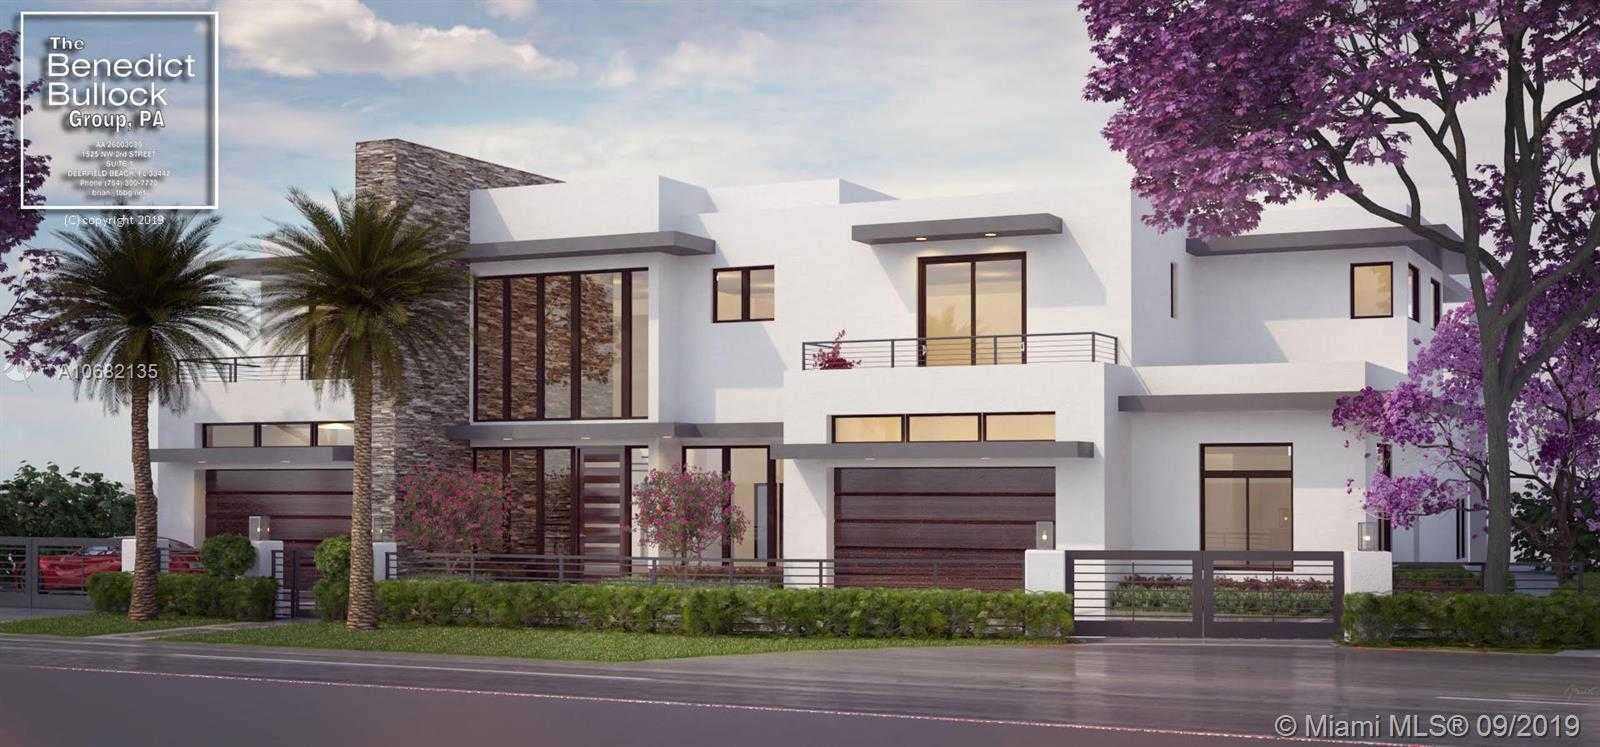 $8,250,000 - 5Br/7Ba -  for Sale in Coral Ridge Country Club, Fort Lauderdale